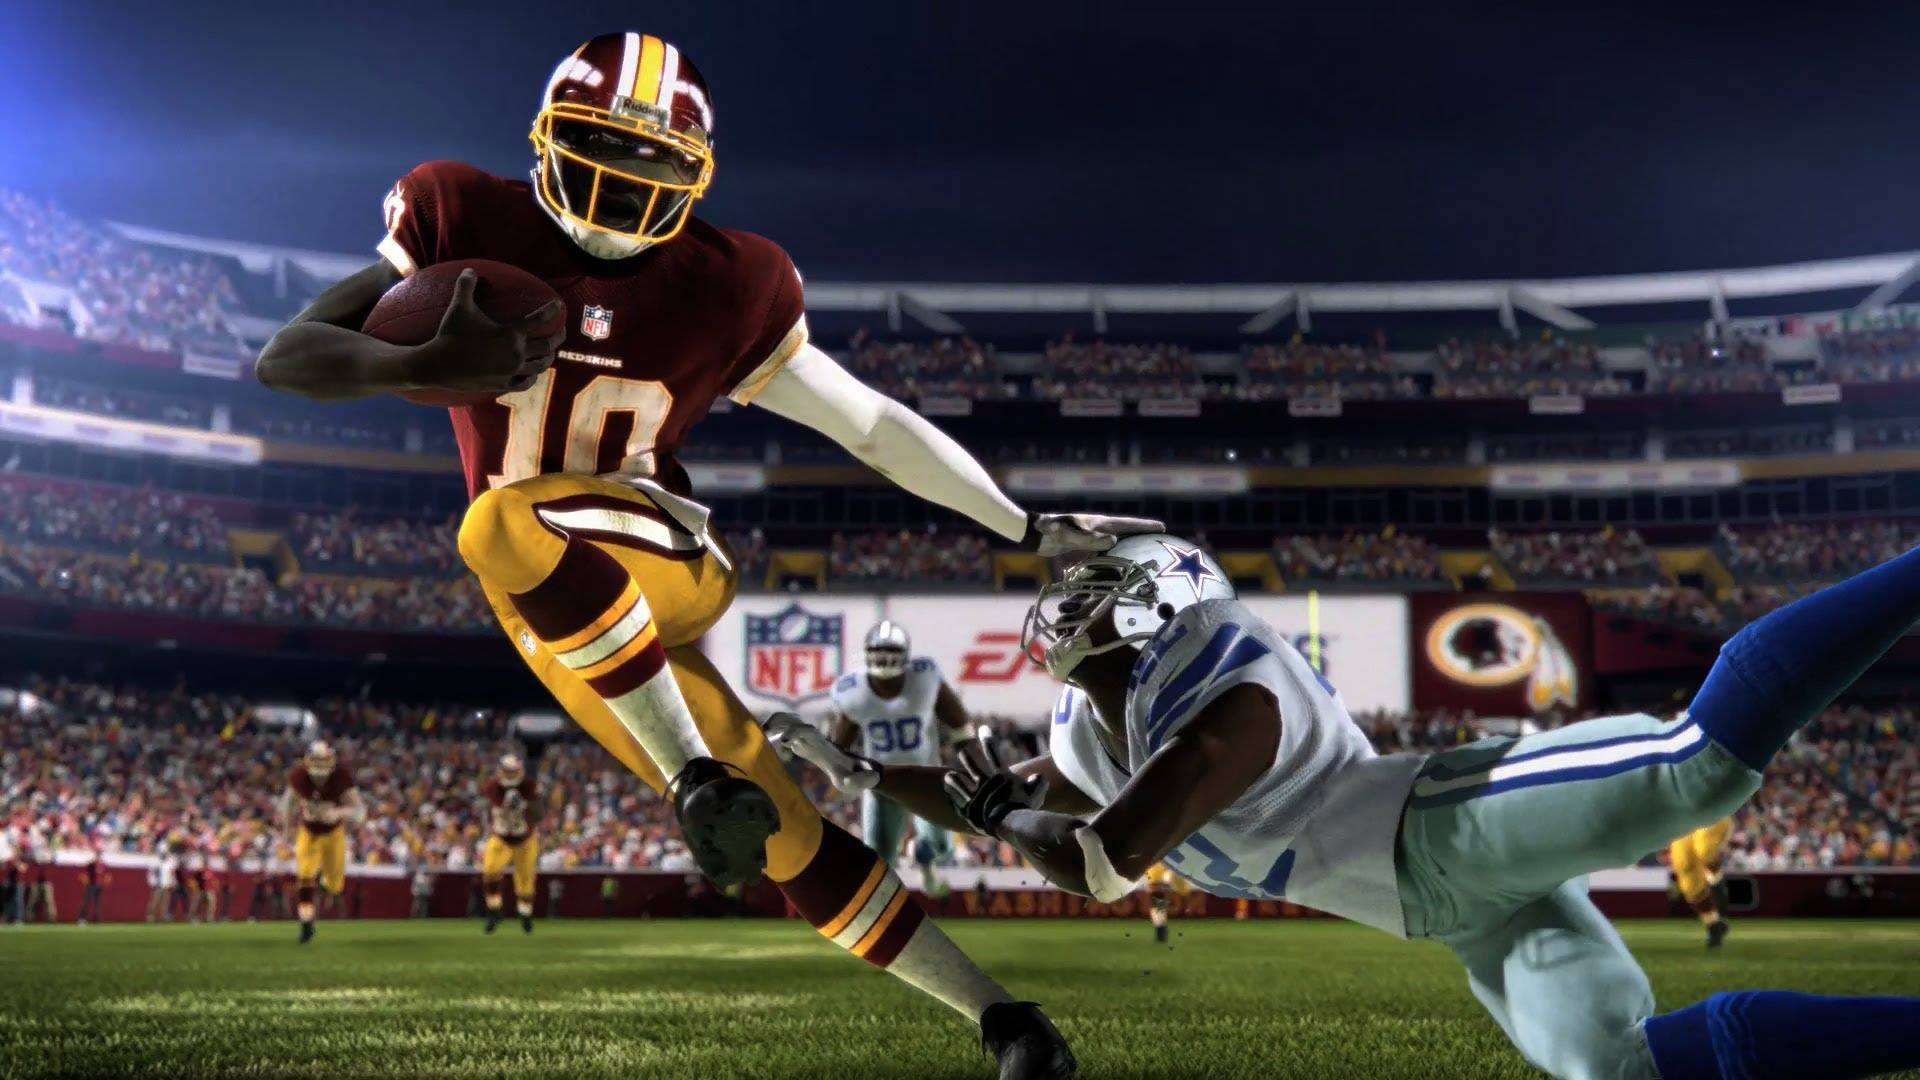 EA Sports Ignite, the Next-Gen Game Engine